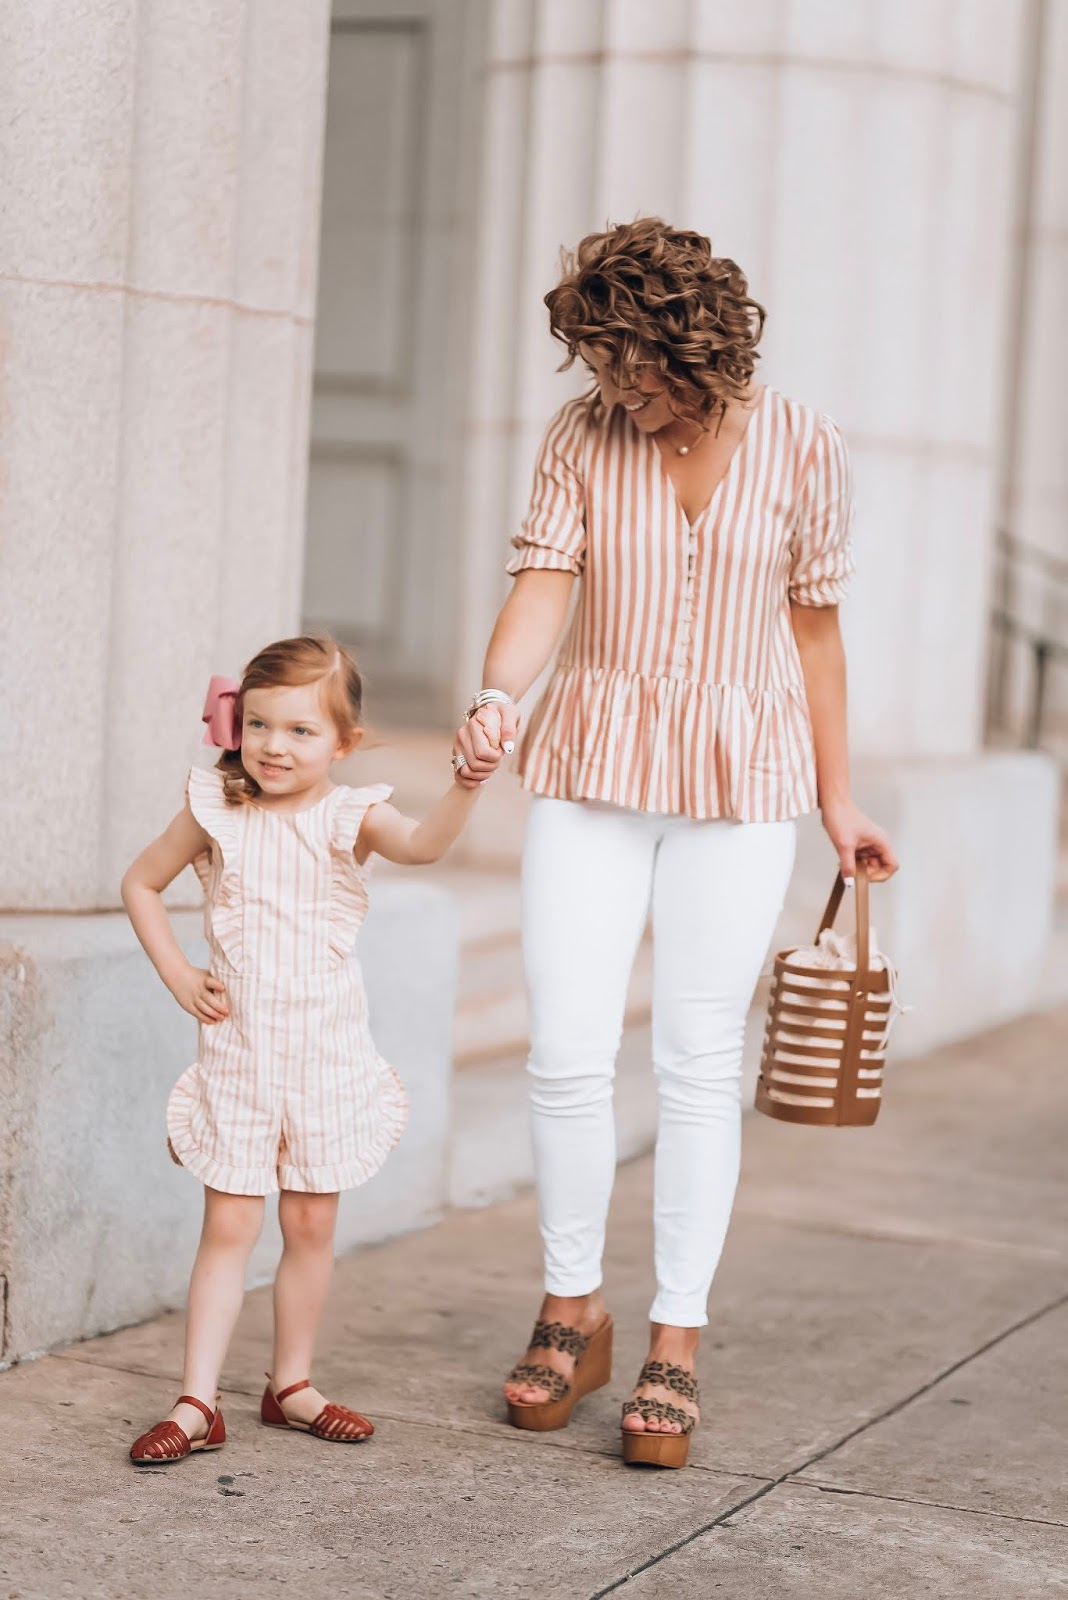 Mommy and Me Stripes for Spring: Madewell Stripe Peplum Top + Target Style Bow Back Romper for toddler girls - Something Delightful Blog #springstyle #springfashion #springlooks